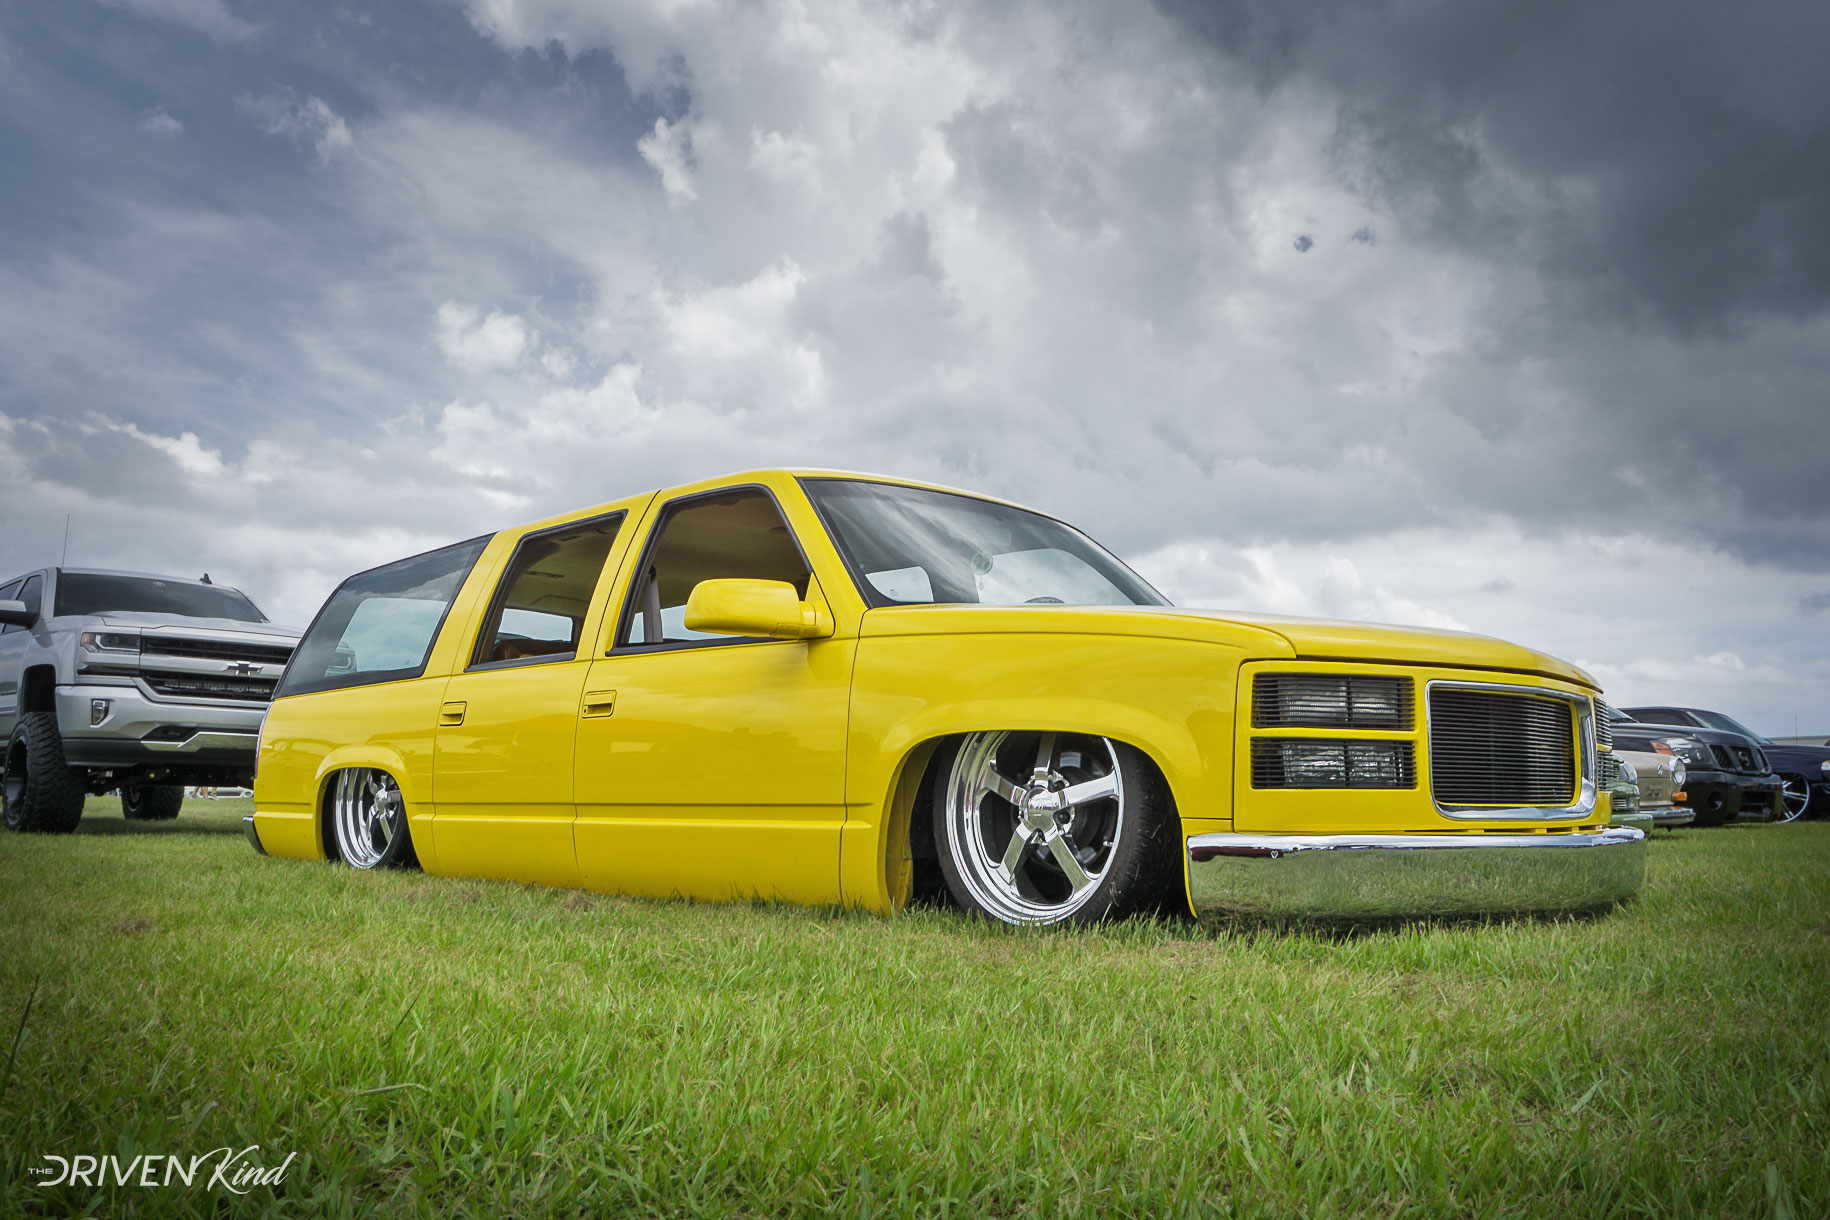 DWN TYME Mini Truck And Lowrider Car Show Vero Beach FL The - Vero beach car show